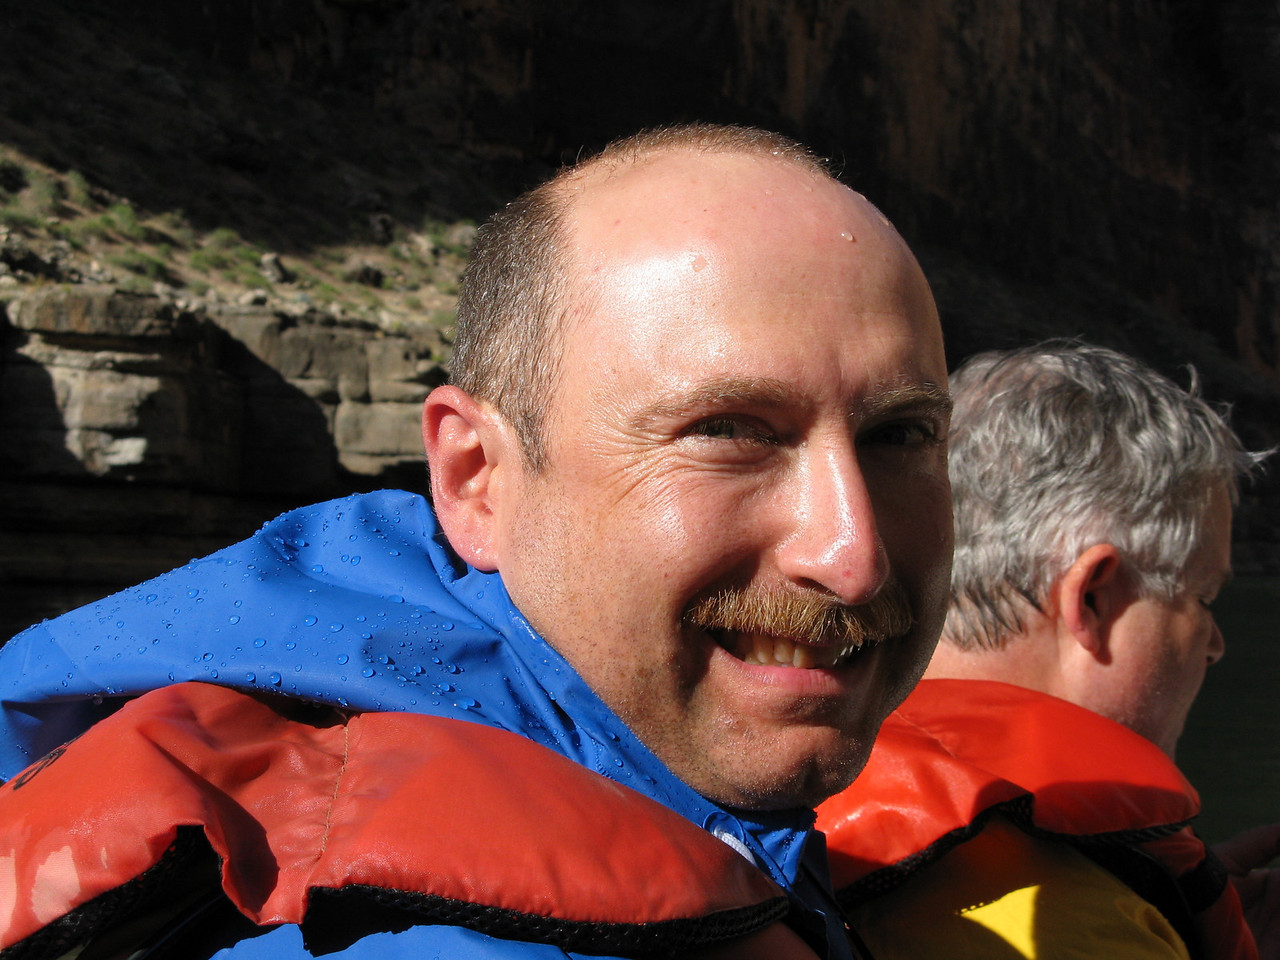 Another happy rafter!  Dariusz got wet, too.  Note the water on his forehead.